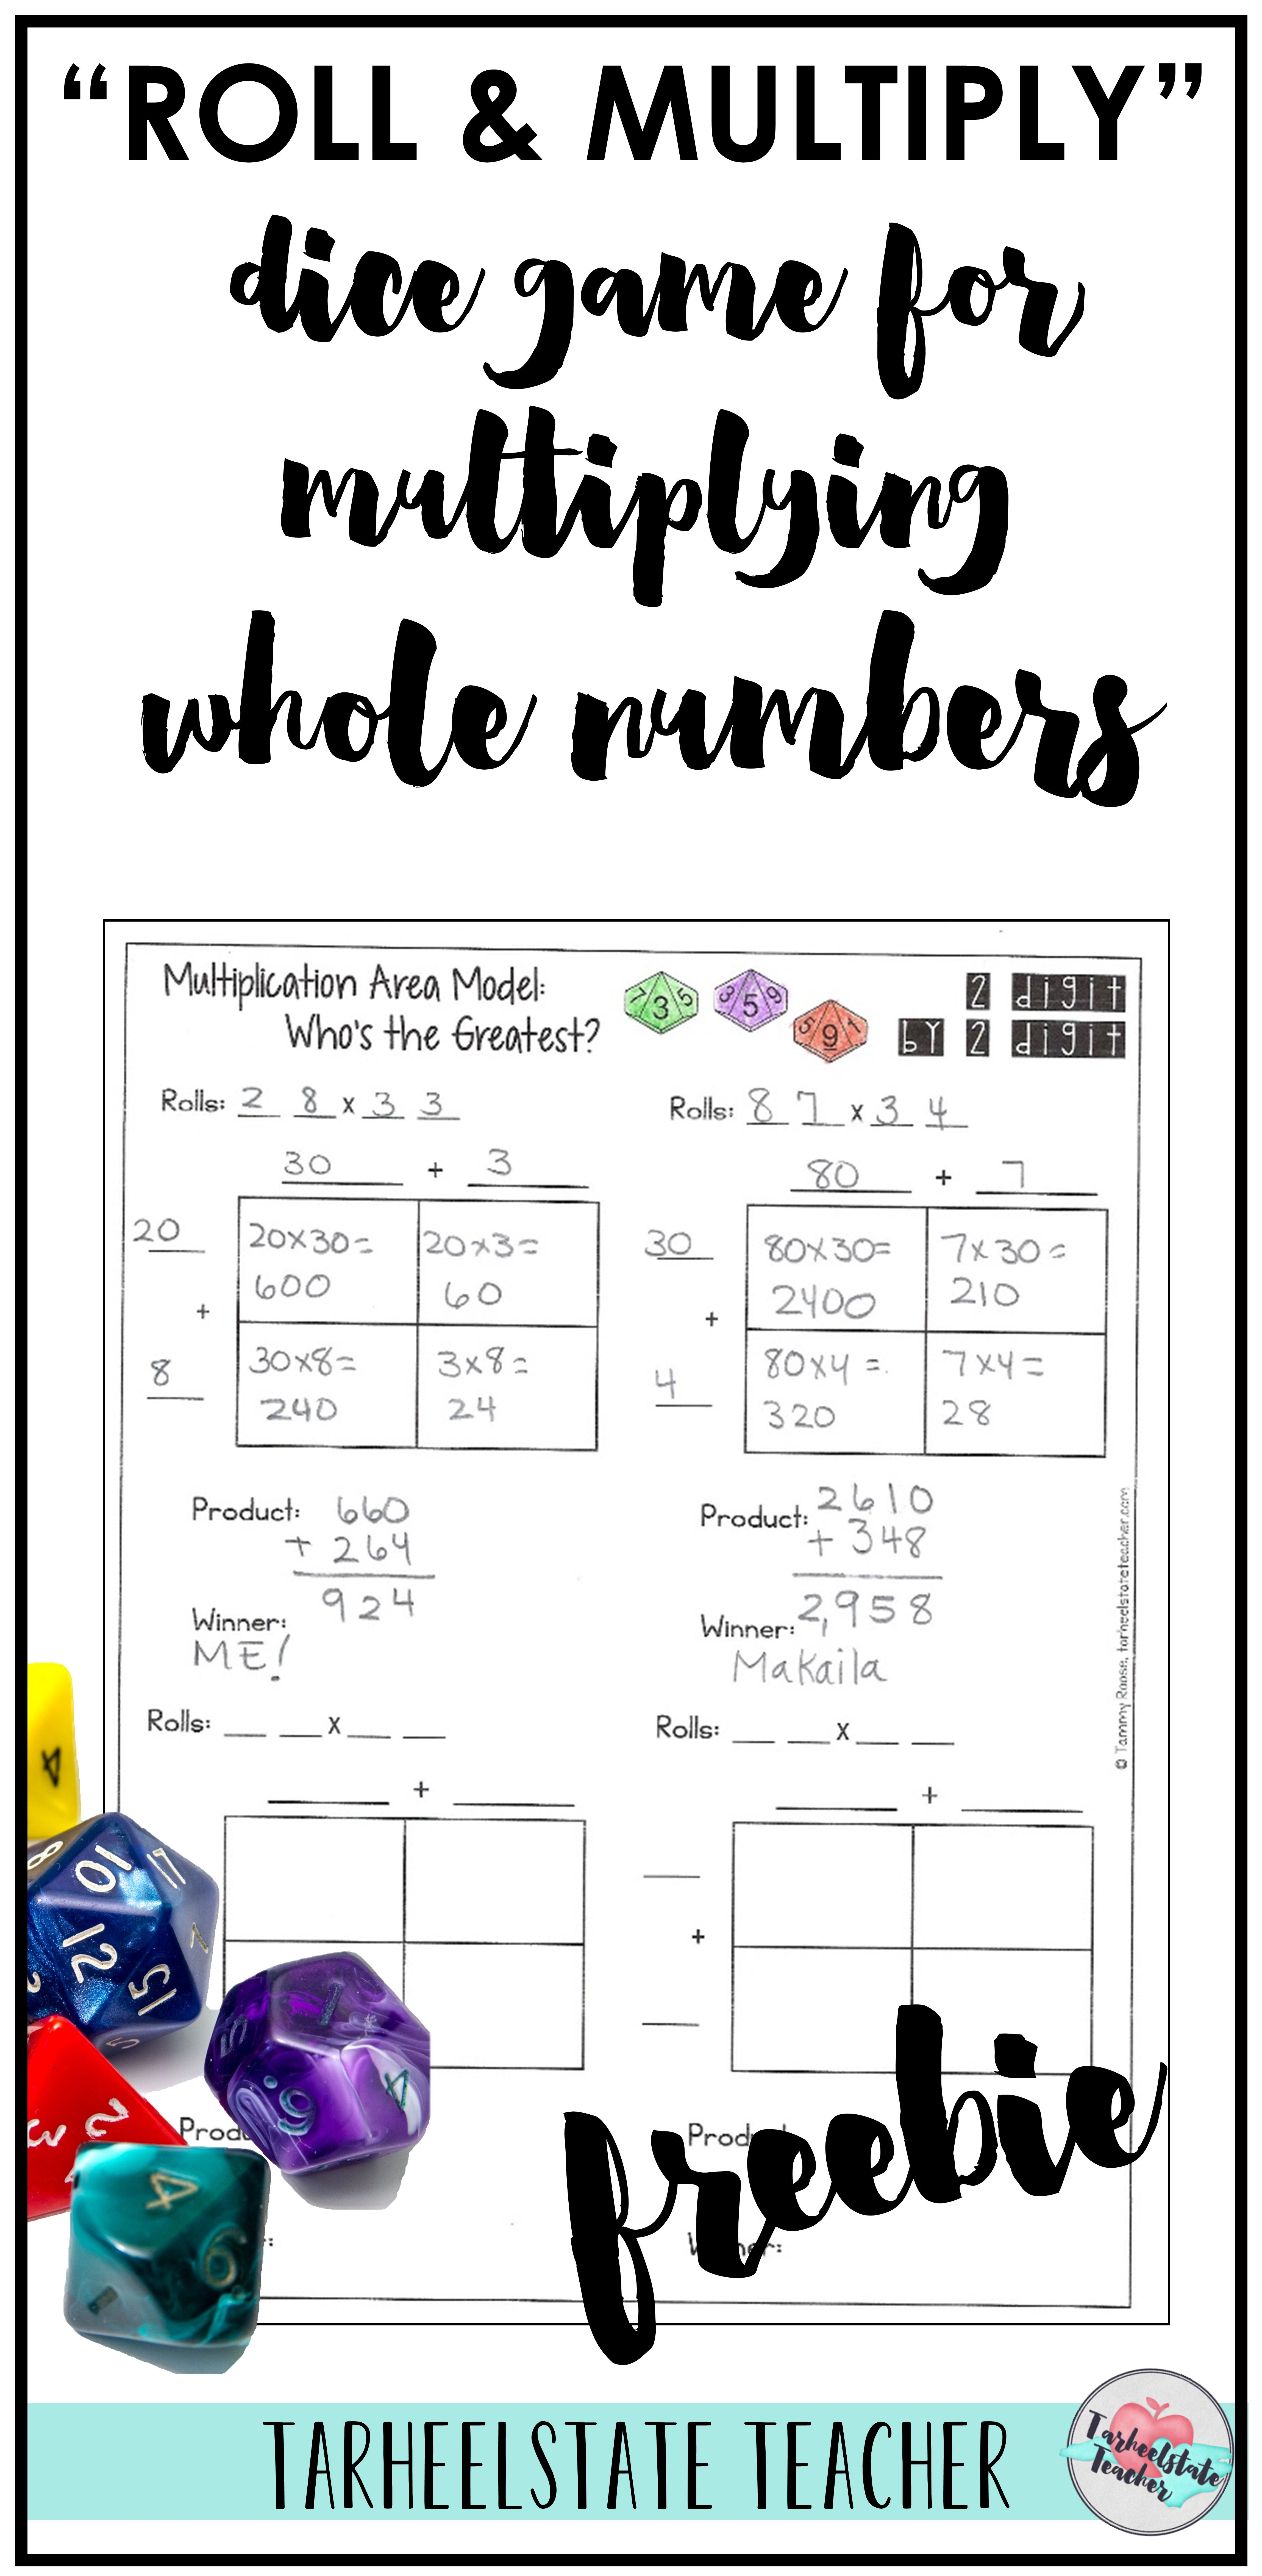 Roll And Multiply Free Dice Game For Multiplying Whole Numbers